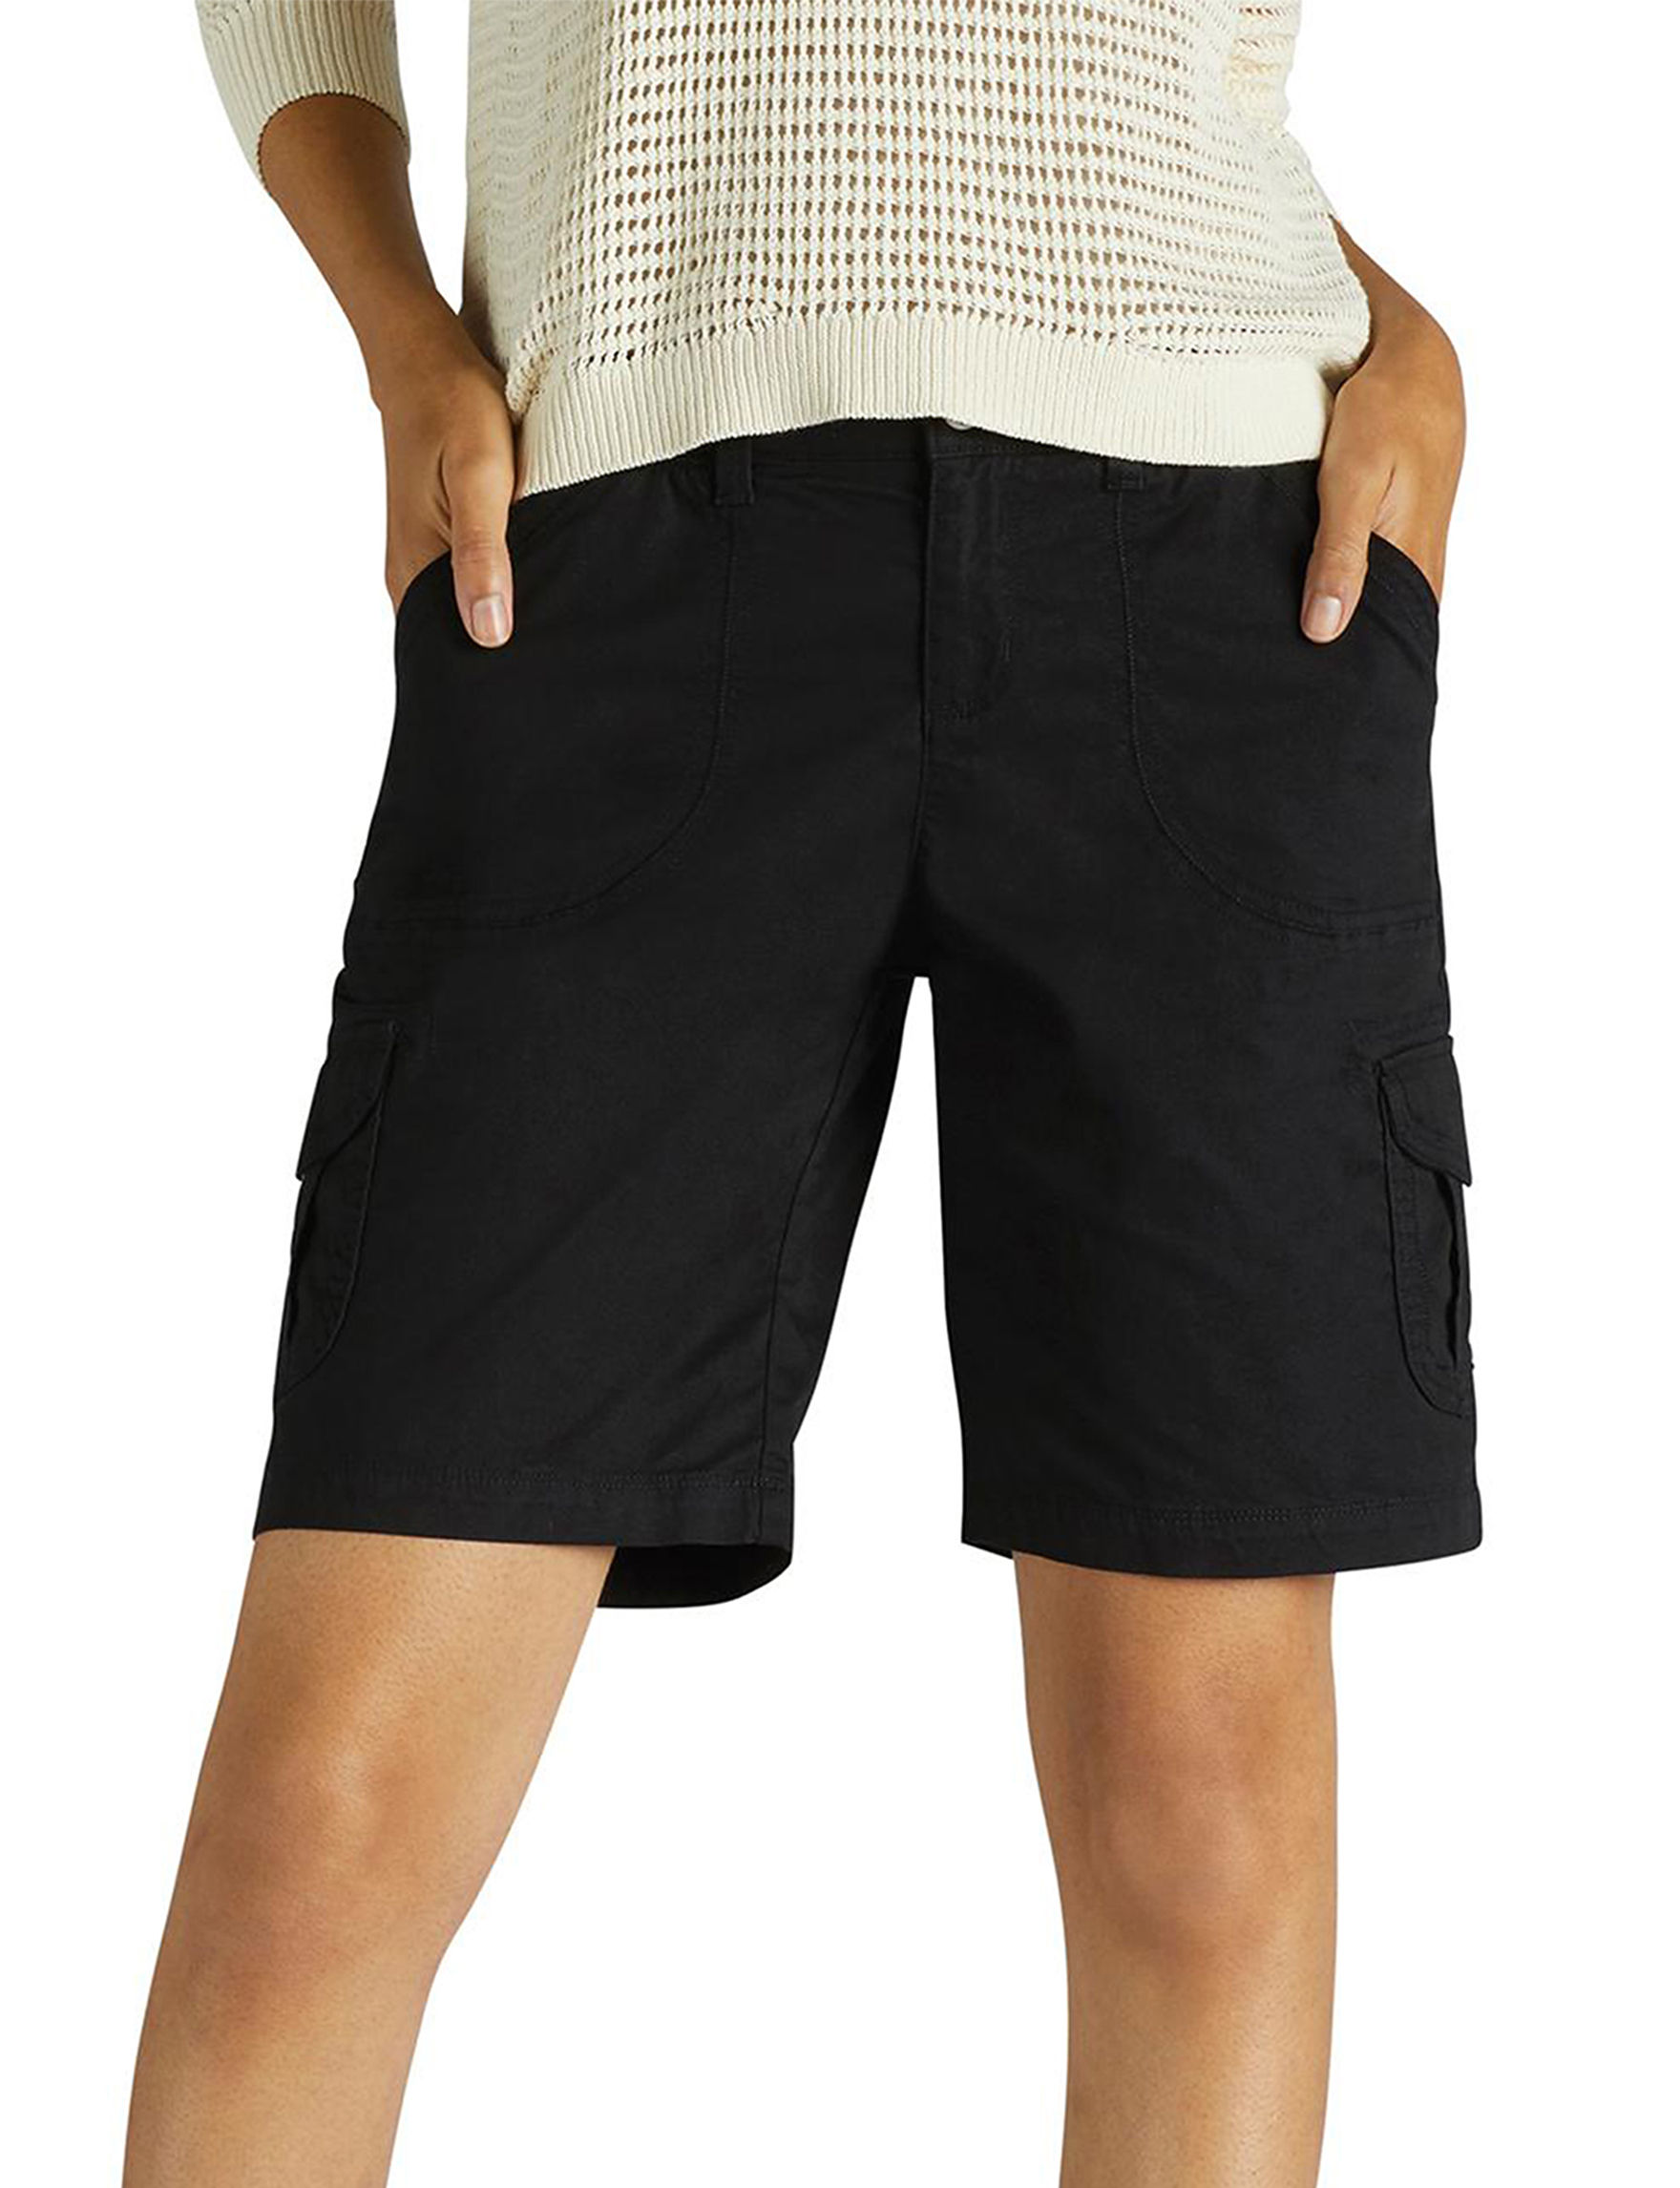 Lee Black Bermudas Relaxed